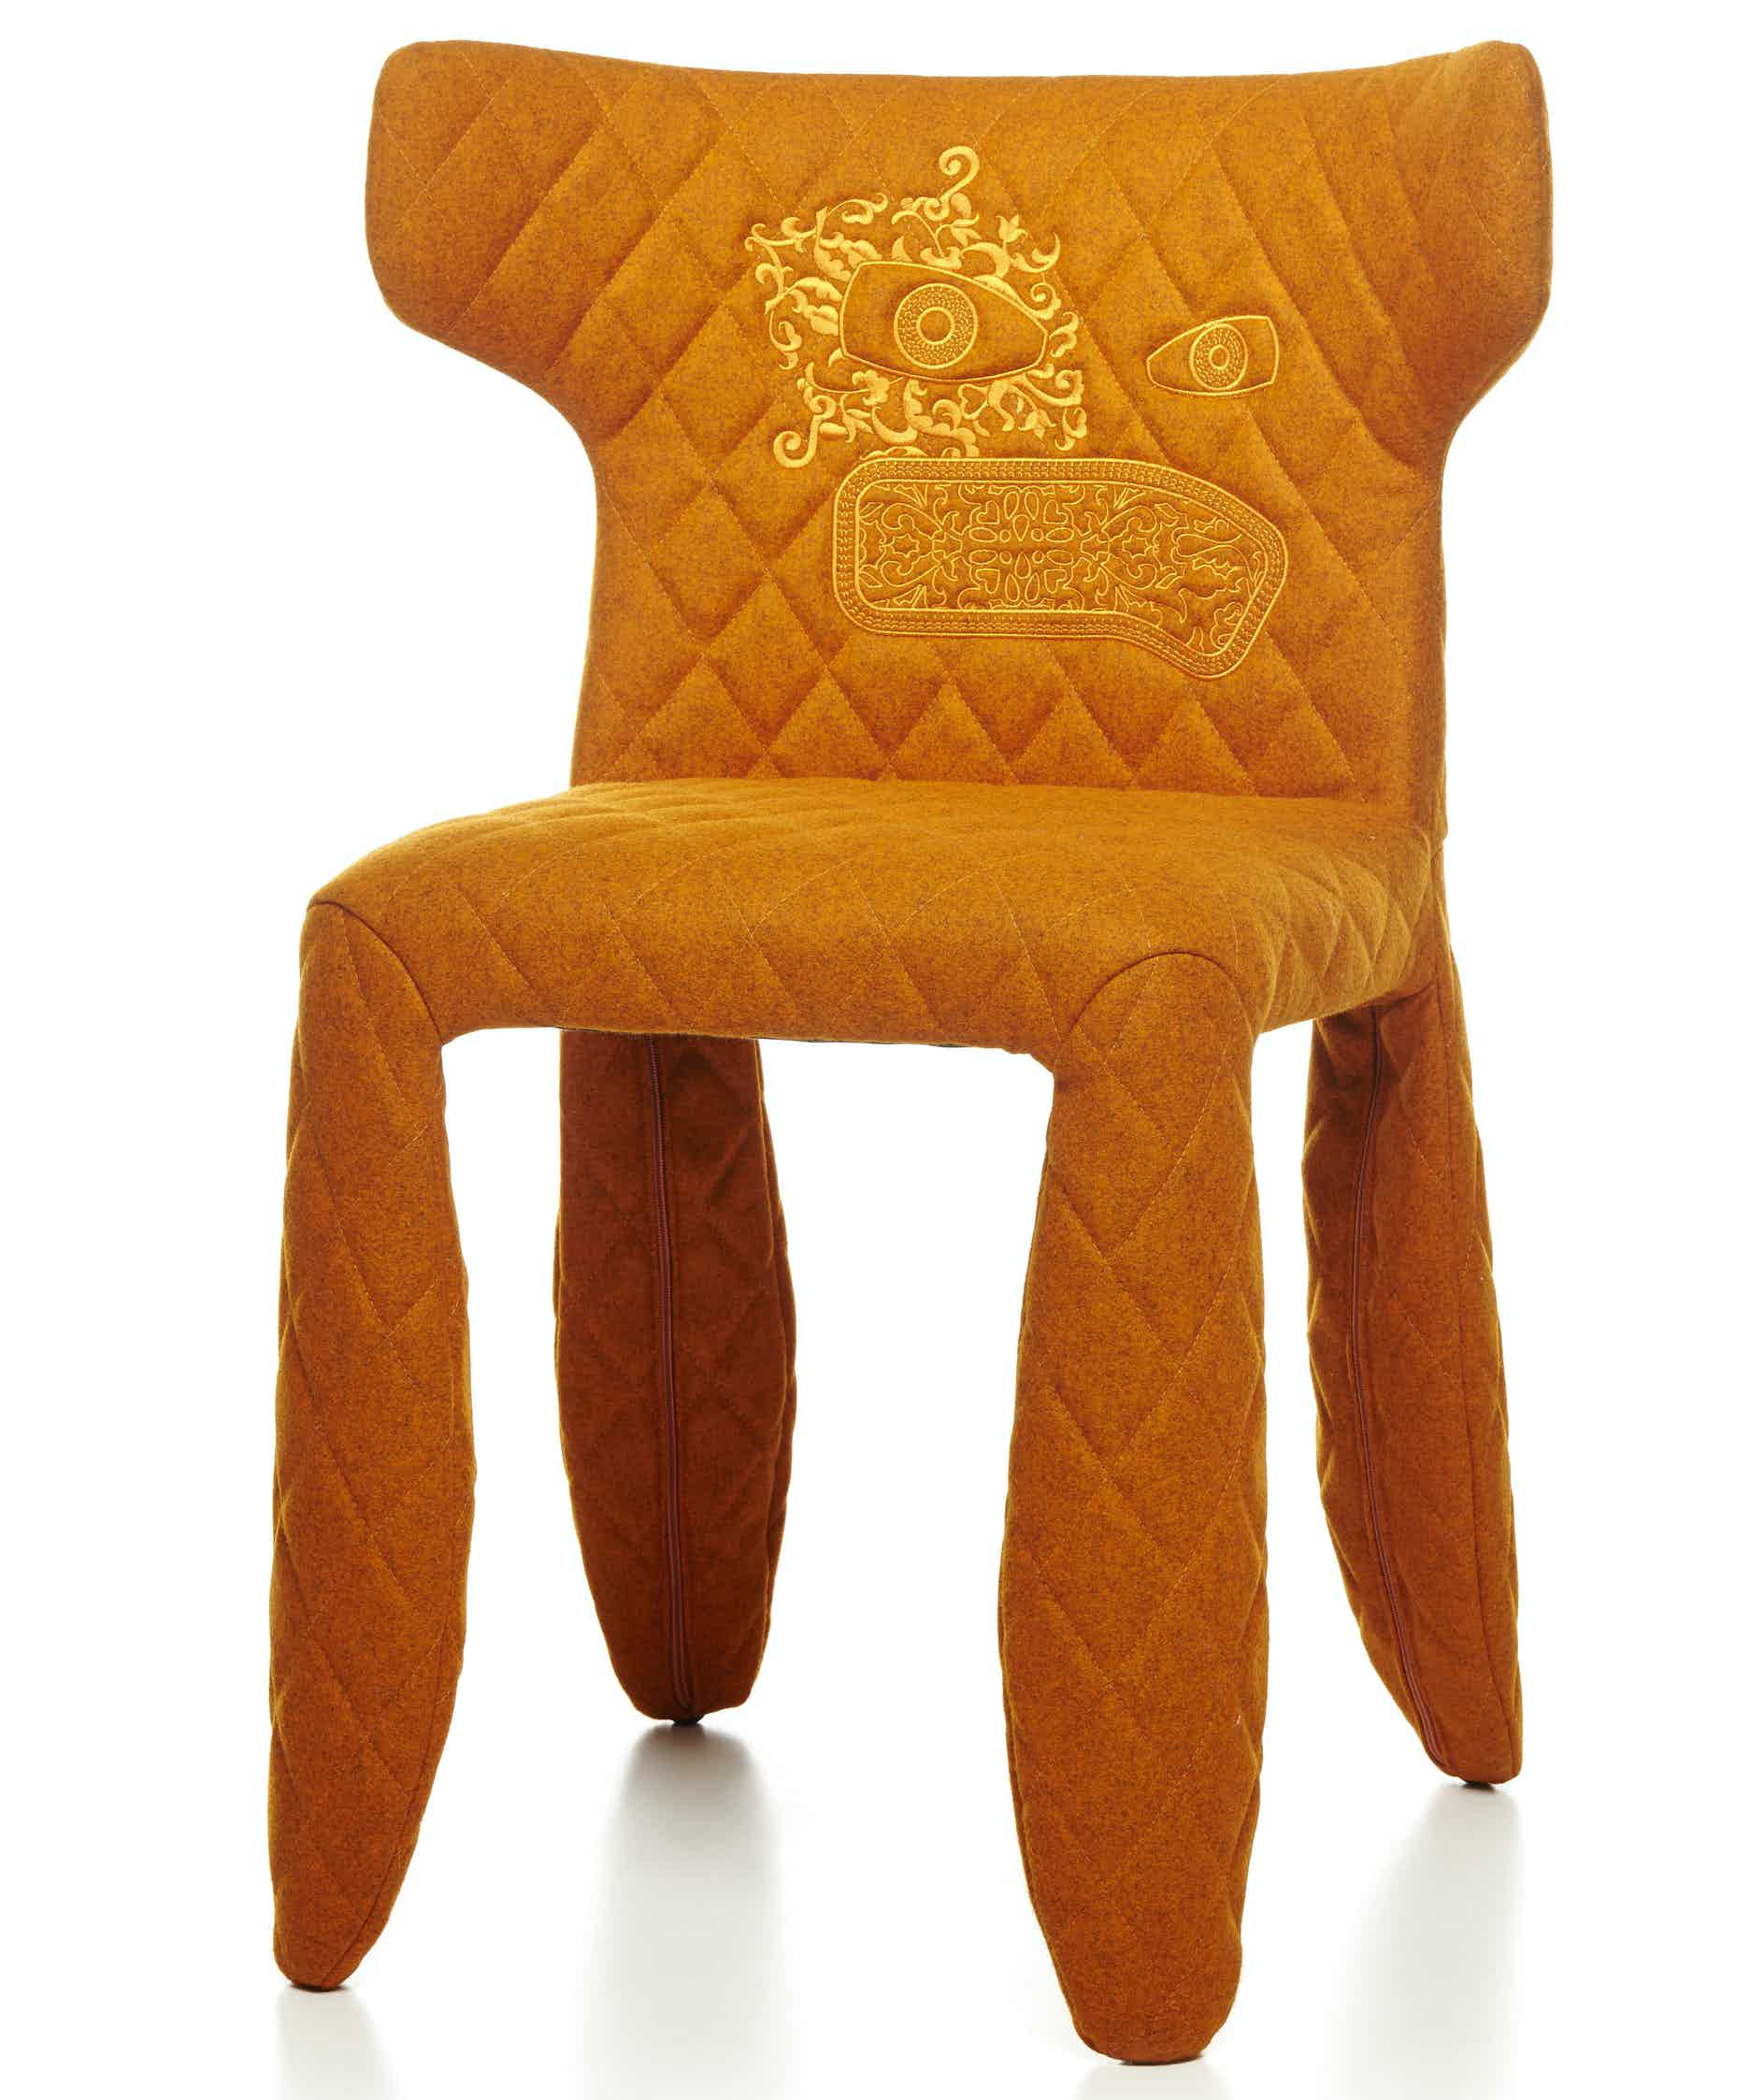 Moooi monster chair divina melange orange haute living